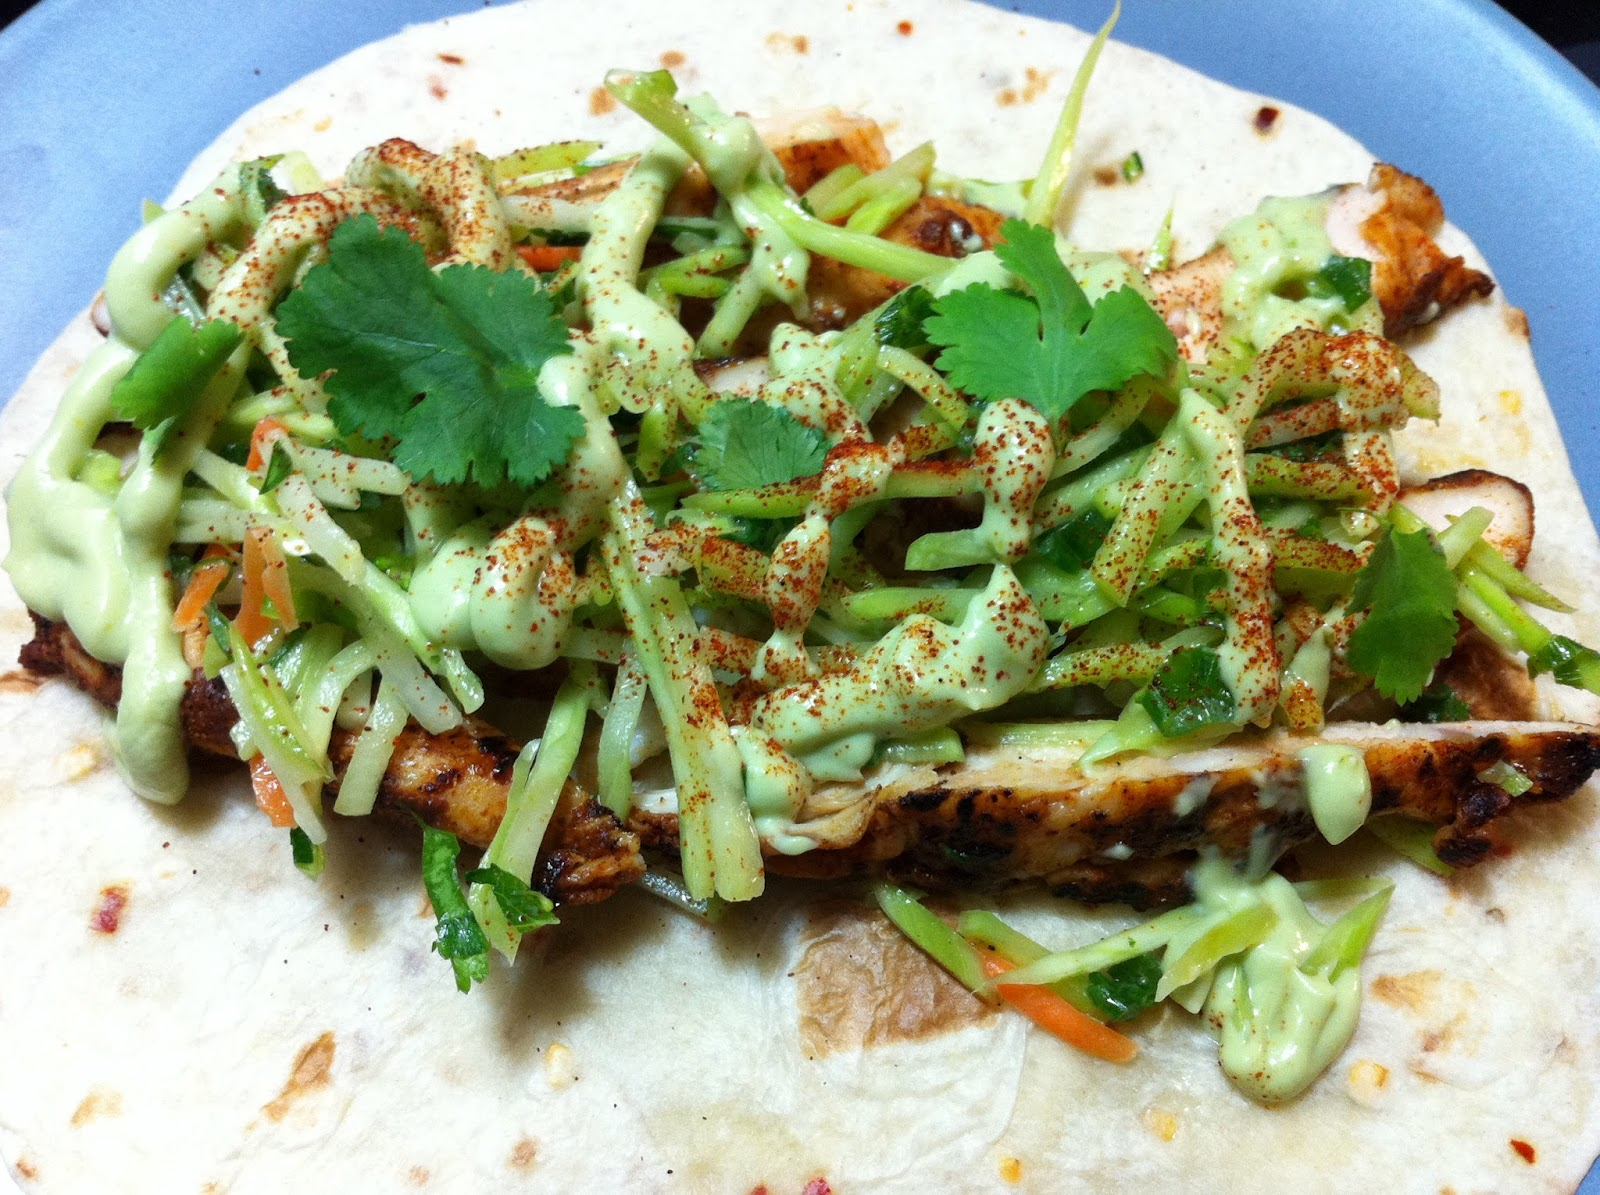 ... with SAHD: Ancho Chicken Tacos with Cilantro Slaw and Avocado Cream